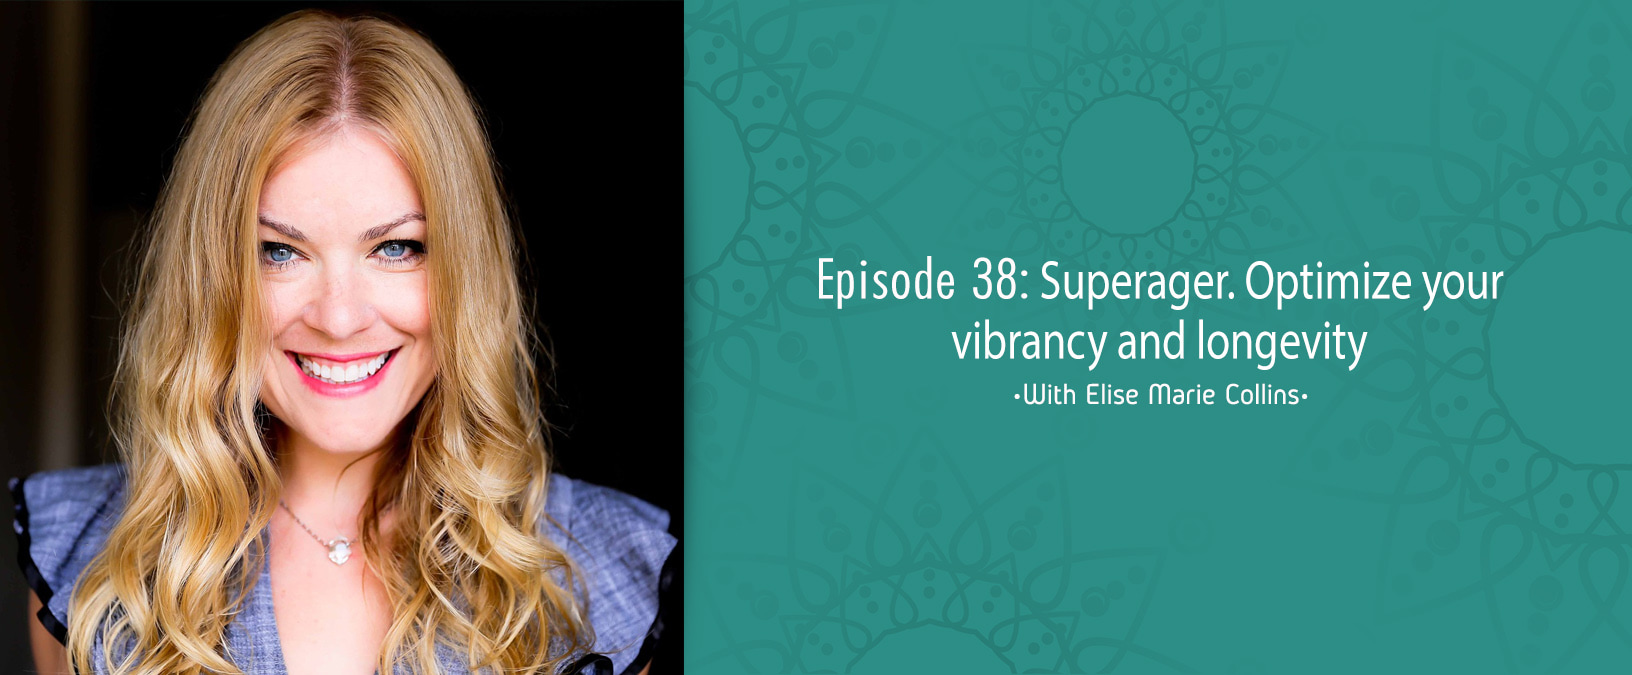 Superager. Optimize your vibrancy and longevity